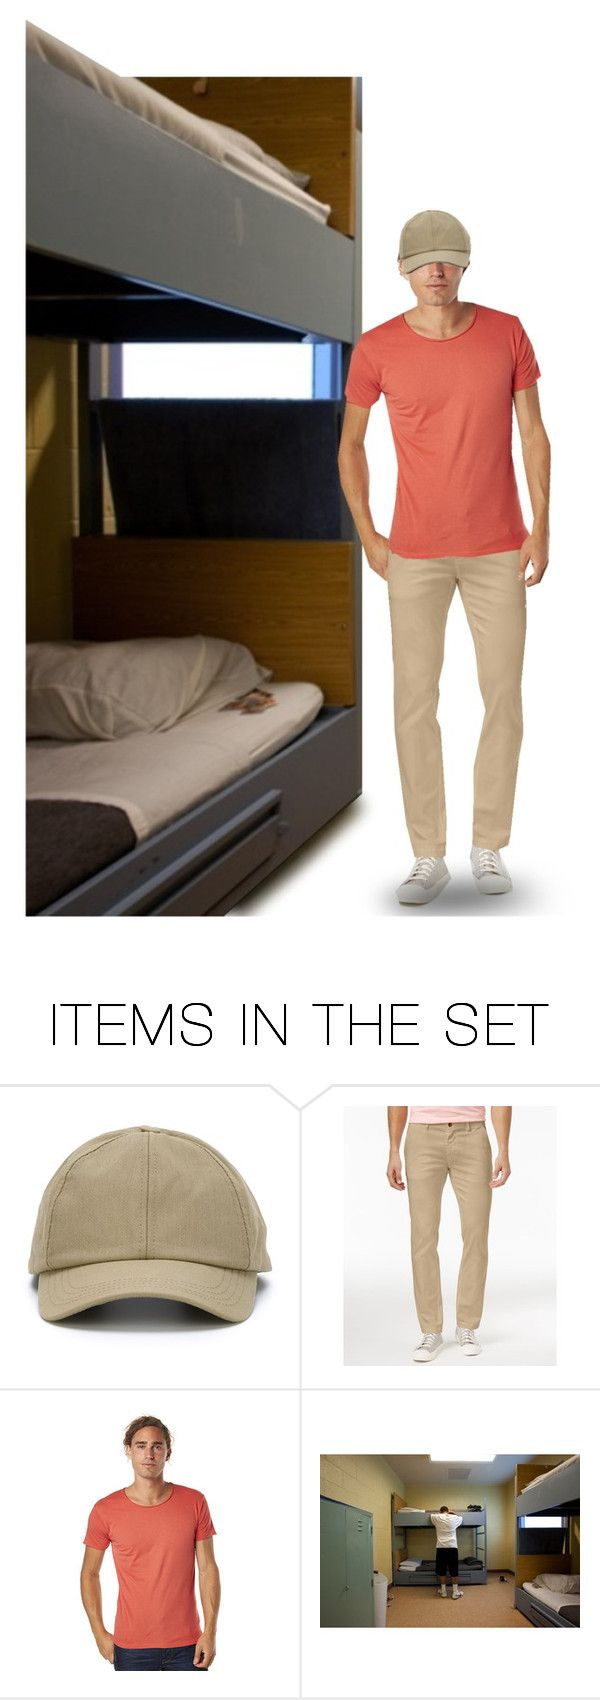 """""""Charlie Was Slender & Nervous…His Mom Drank Too Much & Was Out of Work…Charlie Left School to Get a Job, But Barely Made Enough to Keep His Younger Brother & Sisters Fed…He Shoplifted Some Expensive Electronics Equipment to Keep Them From Being Evicted"""" by maggie-johnston ❤ liked on Polyvore featuring art"""